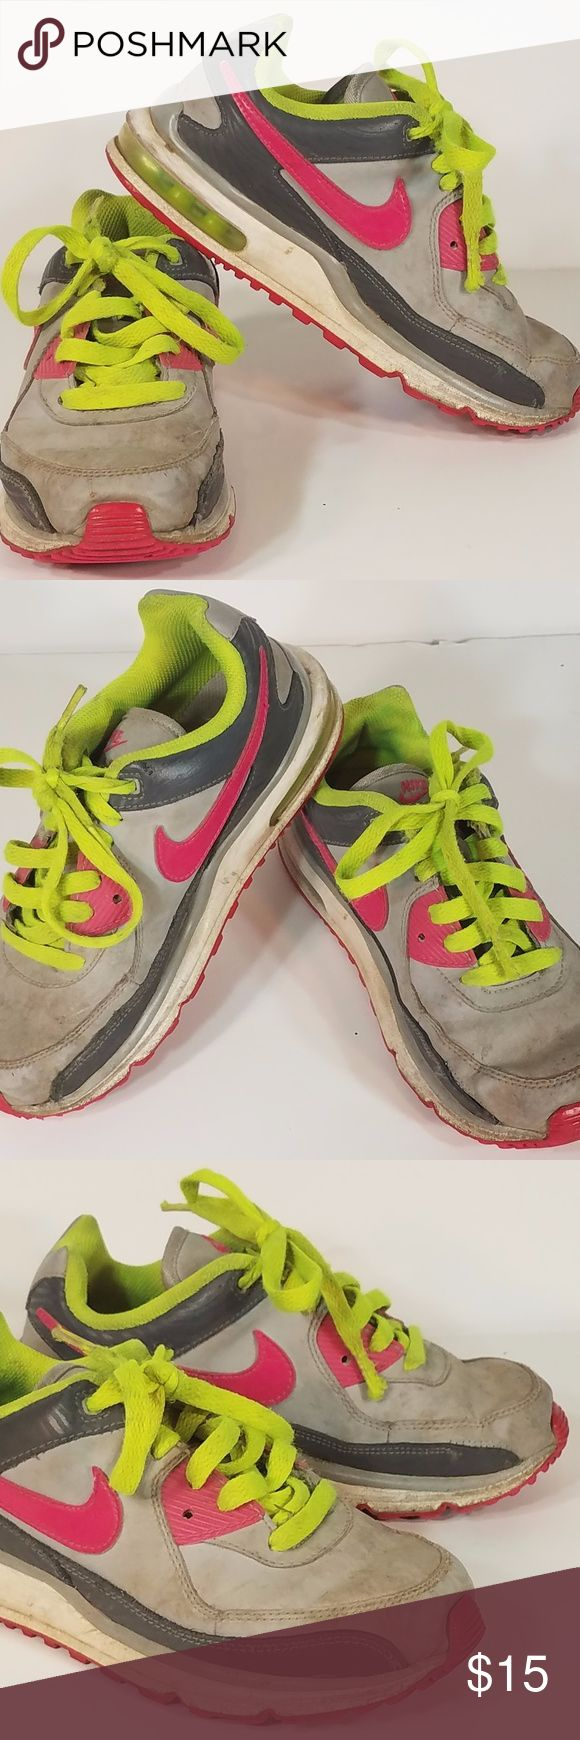 Youth girls gray & pink Nike tennis shoes size 1.5 girls gray, pink and neon green athletic tennis shoes from Nike brand. They are a girls size 1.5 & they are in great/excellent used condition with no real flaws or damage, other than some dirt/staining/discoloration from previous use (see photos). Other than that they are still in great shape and can provide you with a lot of use! They still have plenty of life left in them! They are nice shoes that would be great for casual wear, and I know…